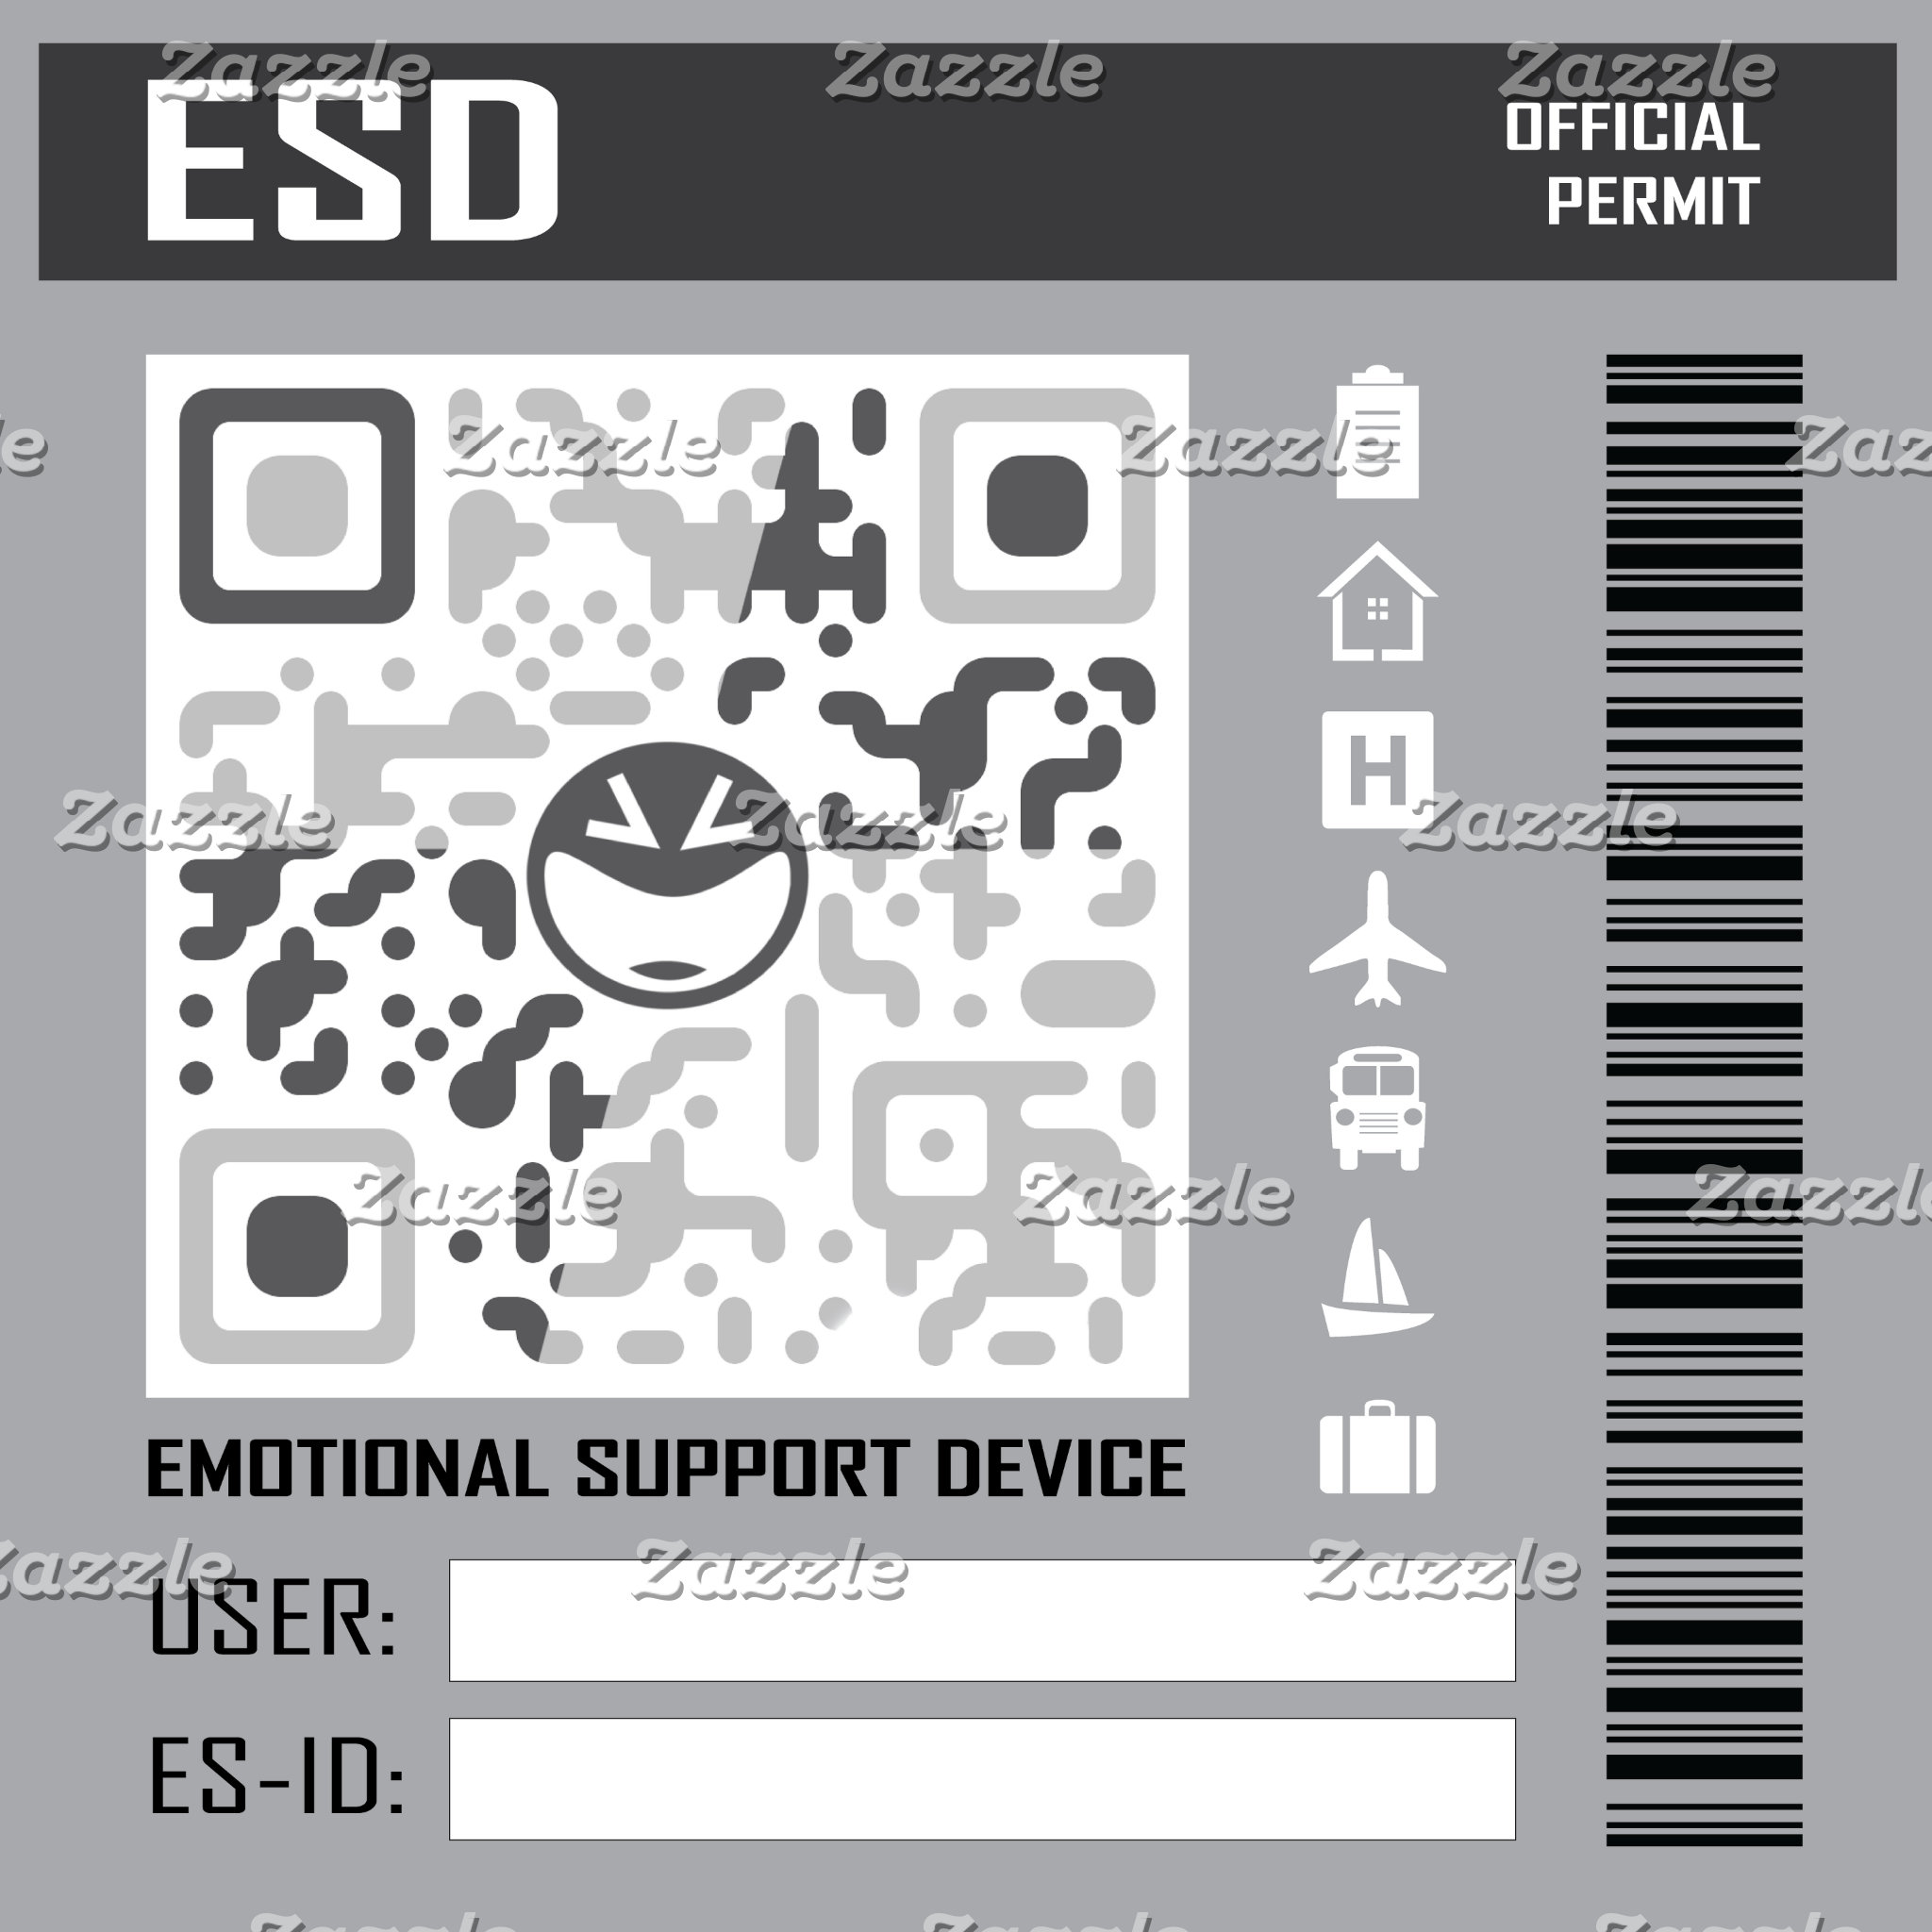 Emotional Support